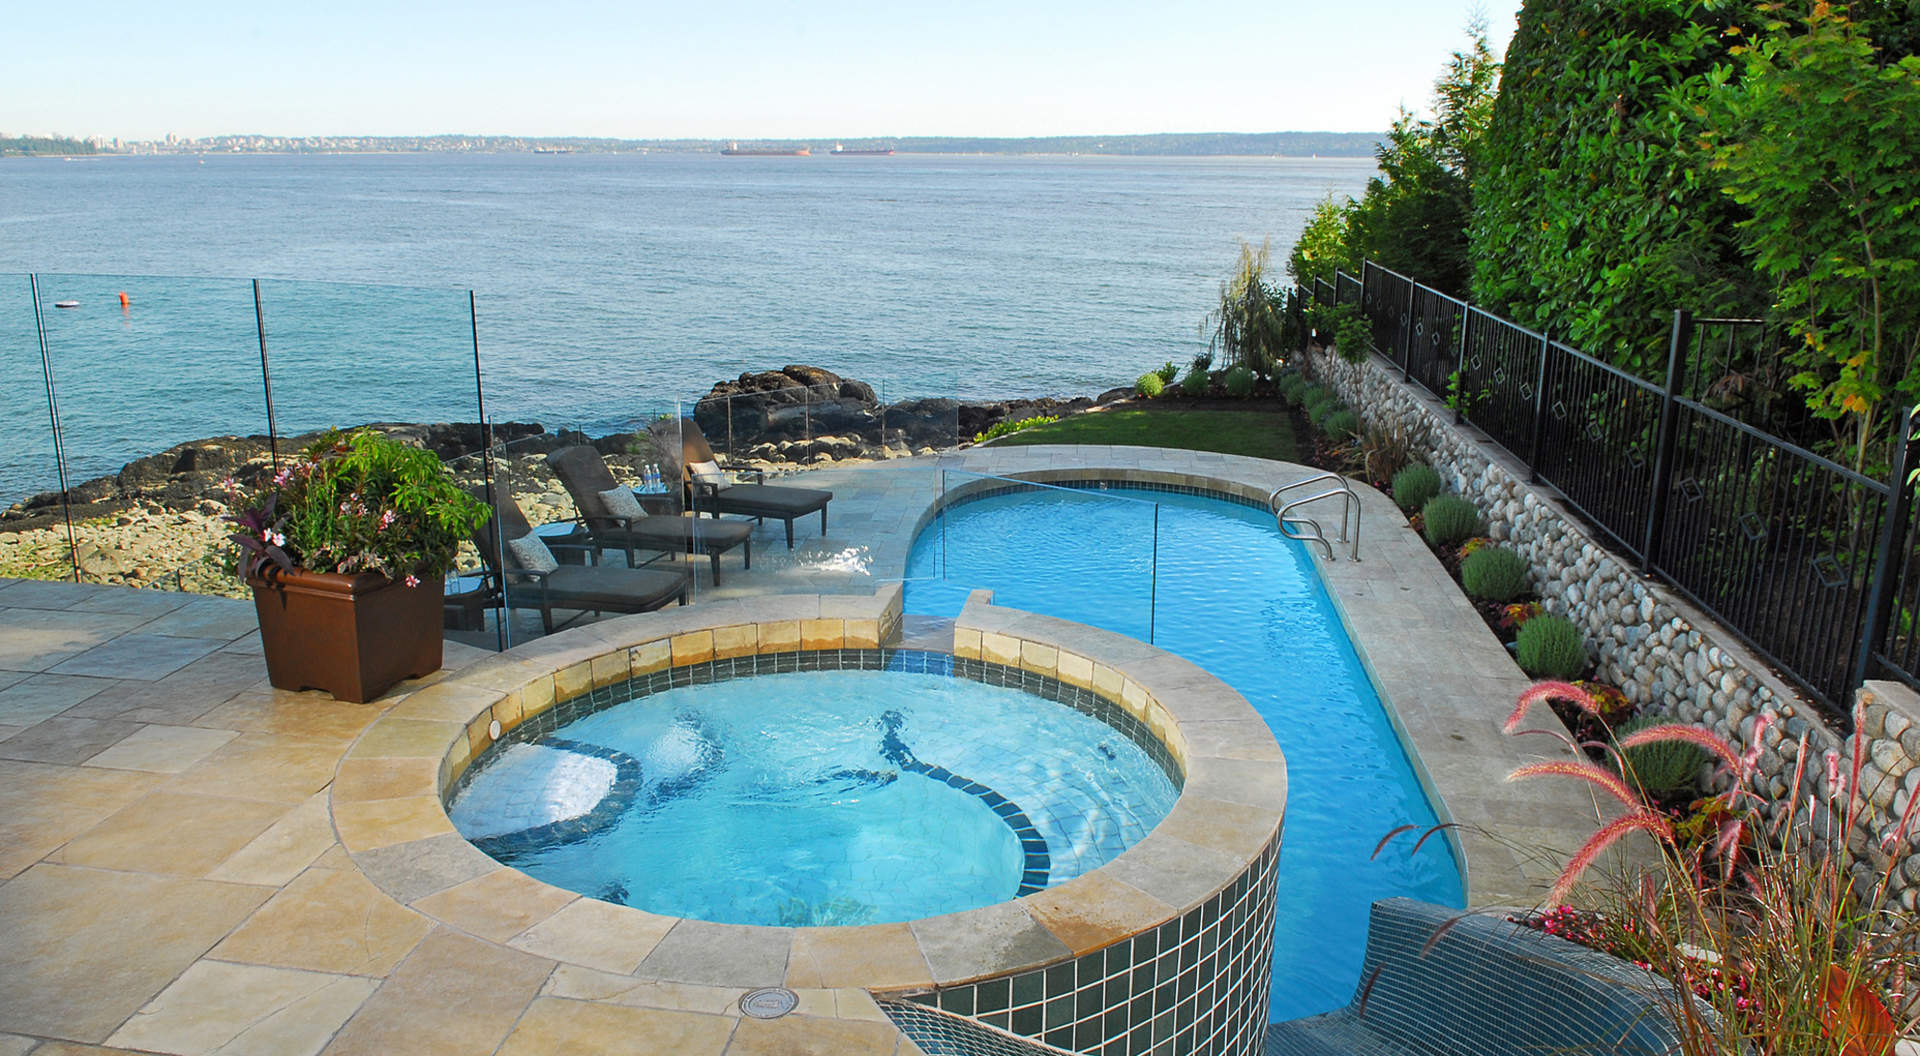 Spectacular Seaside Pool and Hot Tub with Water Slide